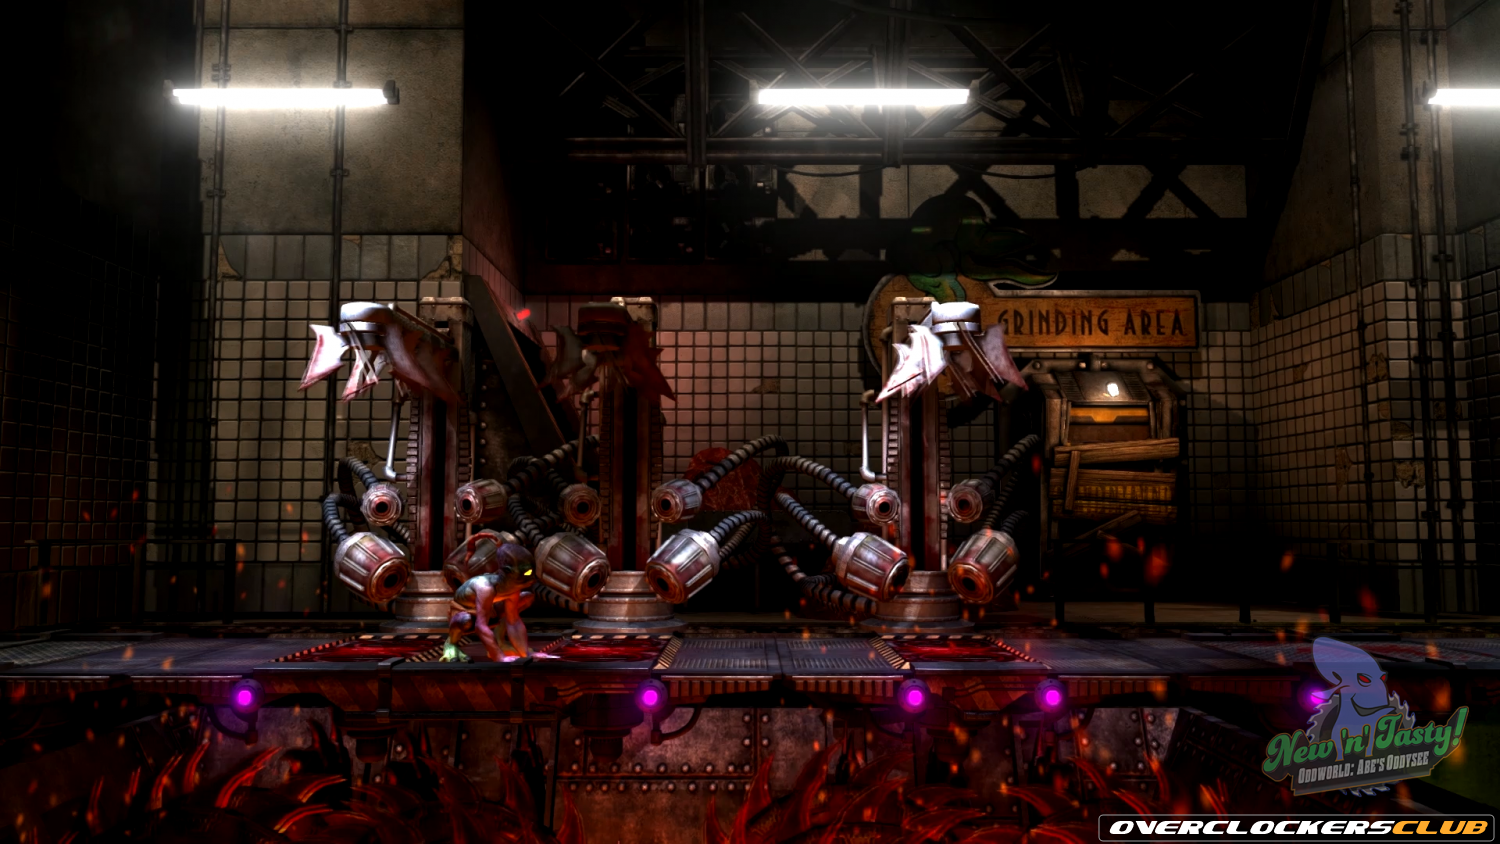 Oddworld: New 'n' Tasty Gets a Stunning Gameplay Trailer for GDC 2014